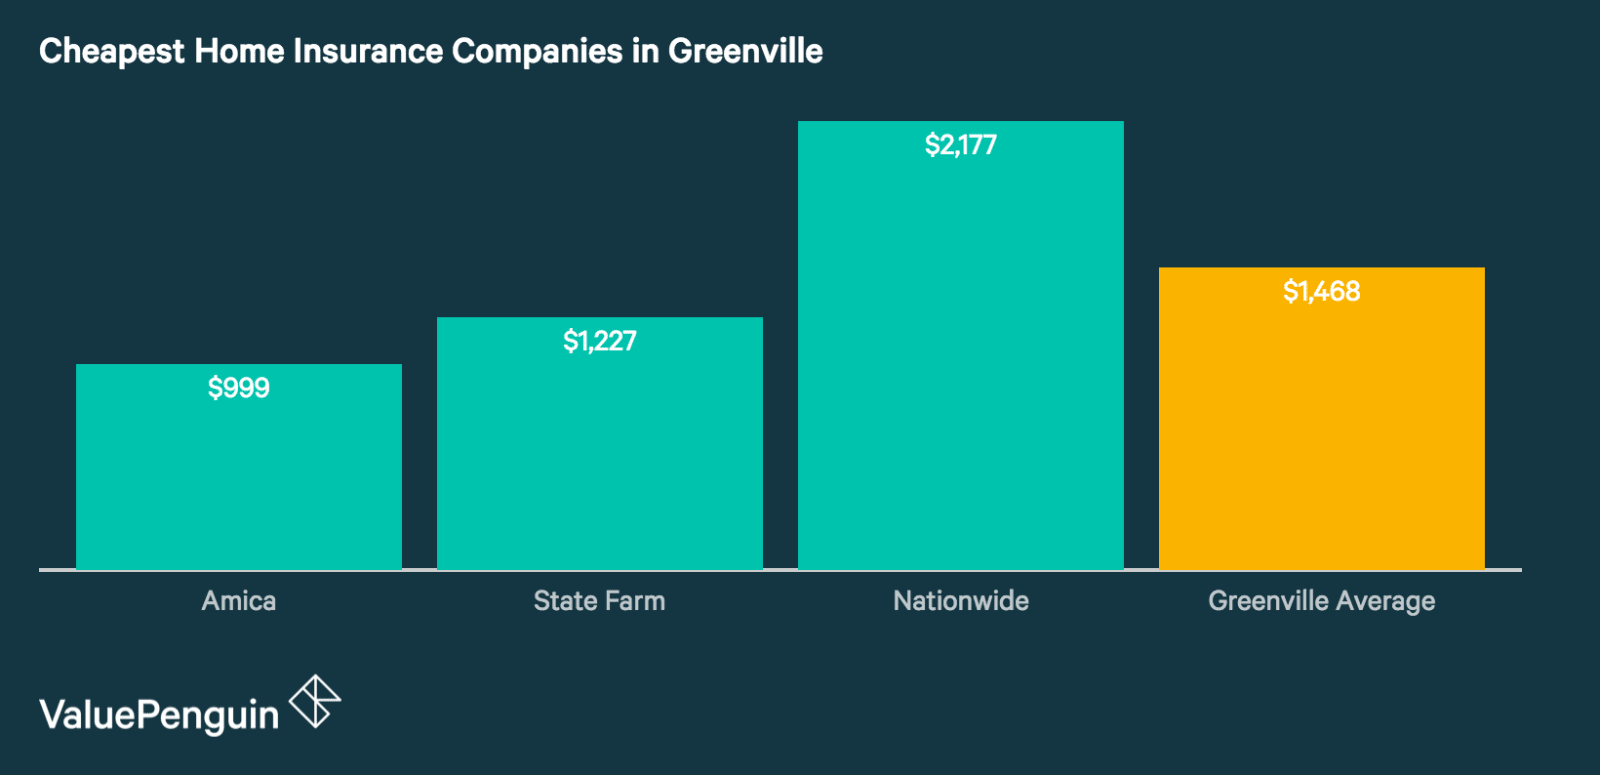 Quotes from Greenville's Cheapest Home Insurance Companies